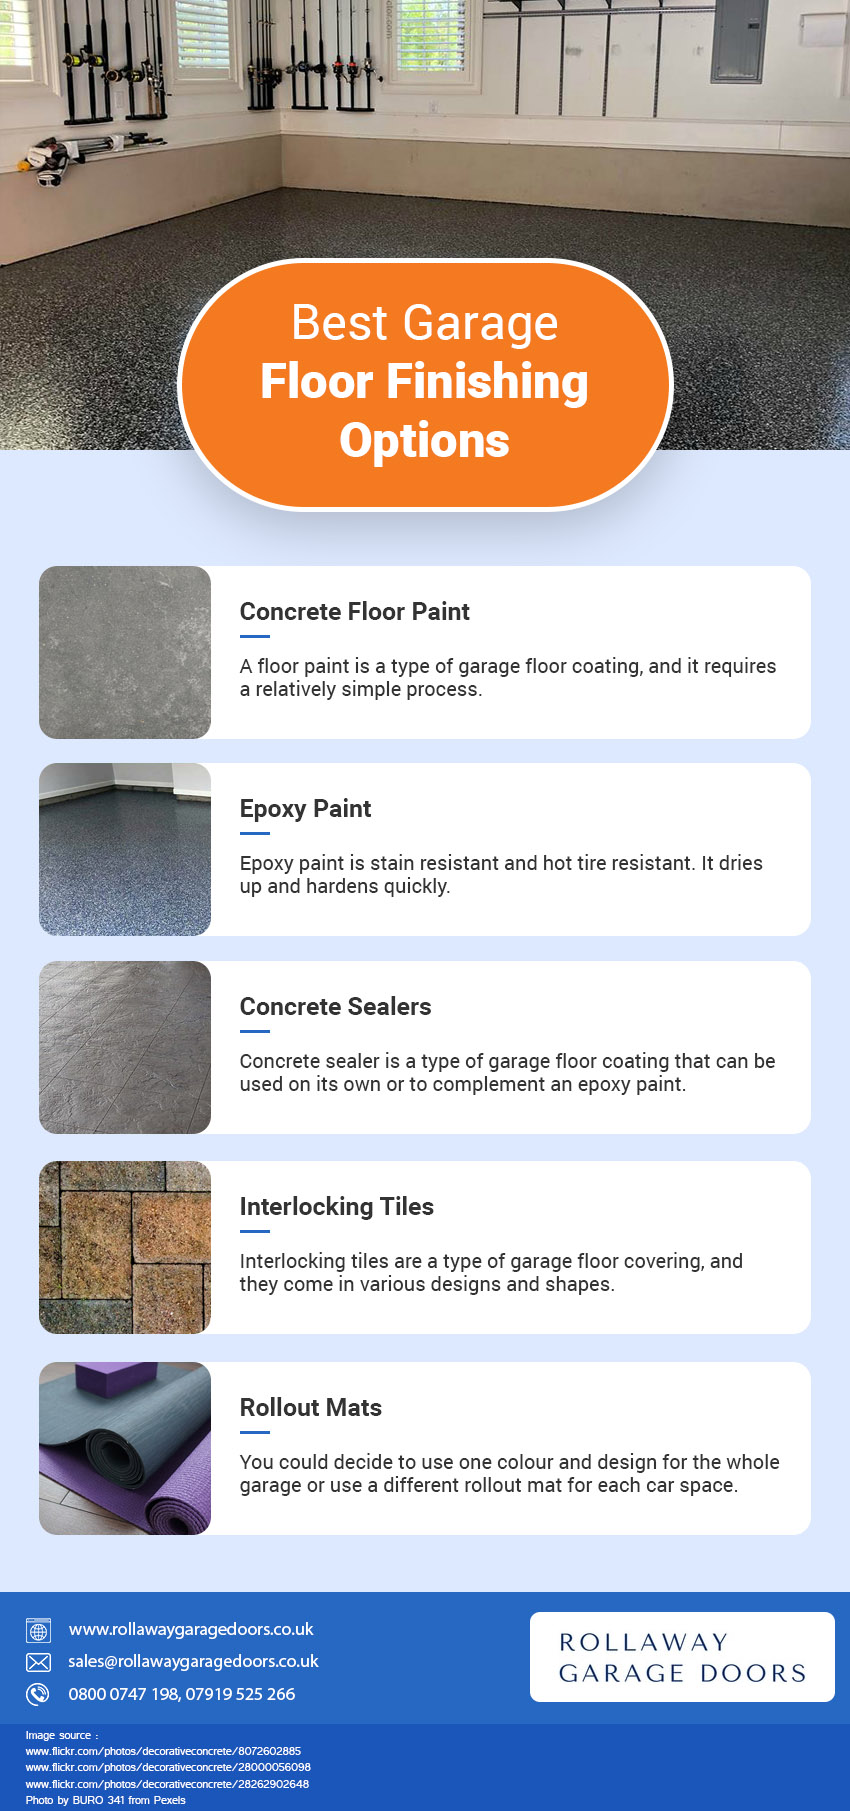 5 Best Garage Floor Finishing Options And Ideas